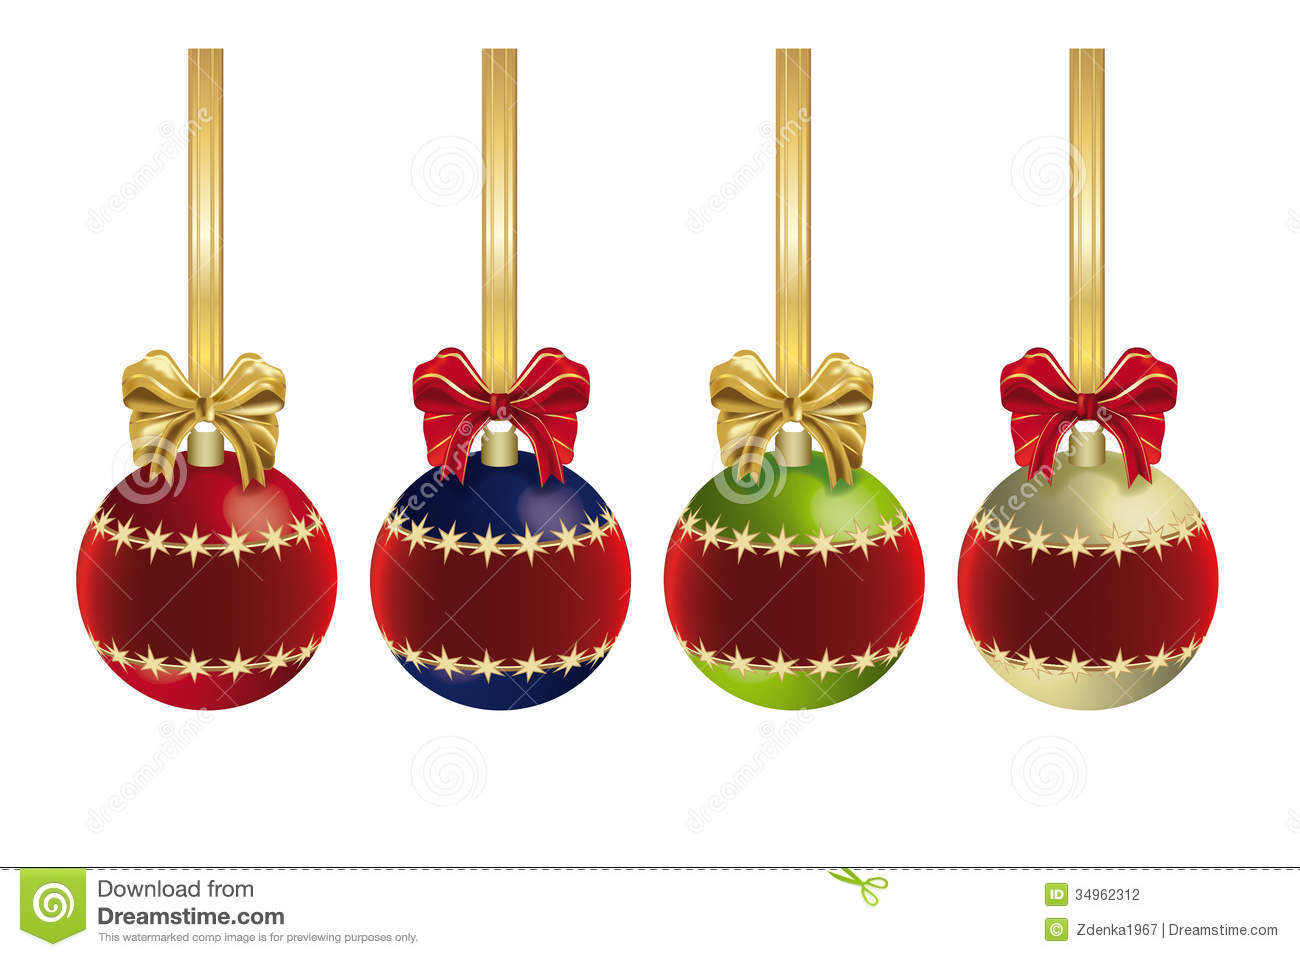 christmas decoration with ribbon - Christmas Ribbon Decorations